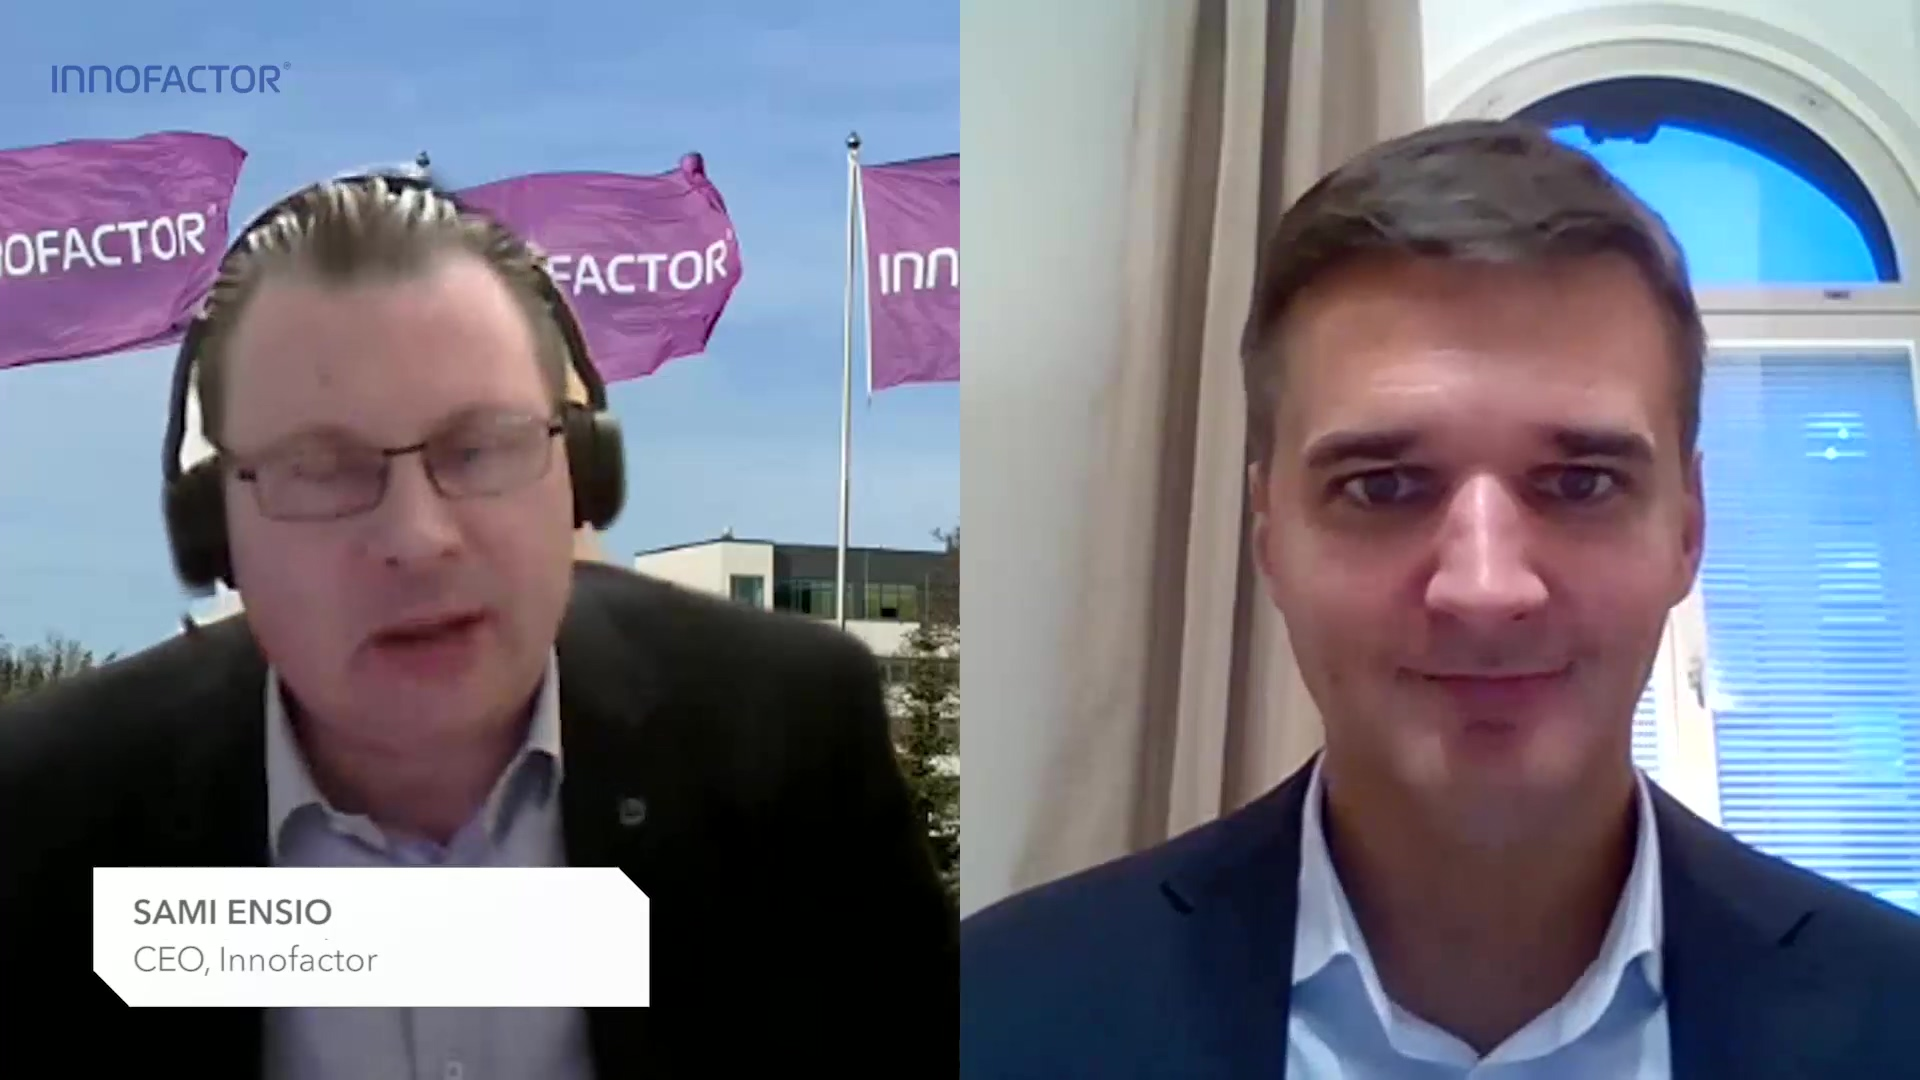 Innofactor Q320 video interview with CEO Sami Ensio